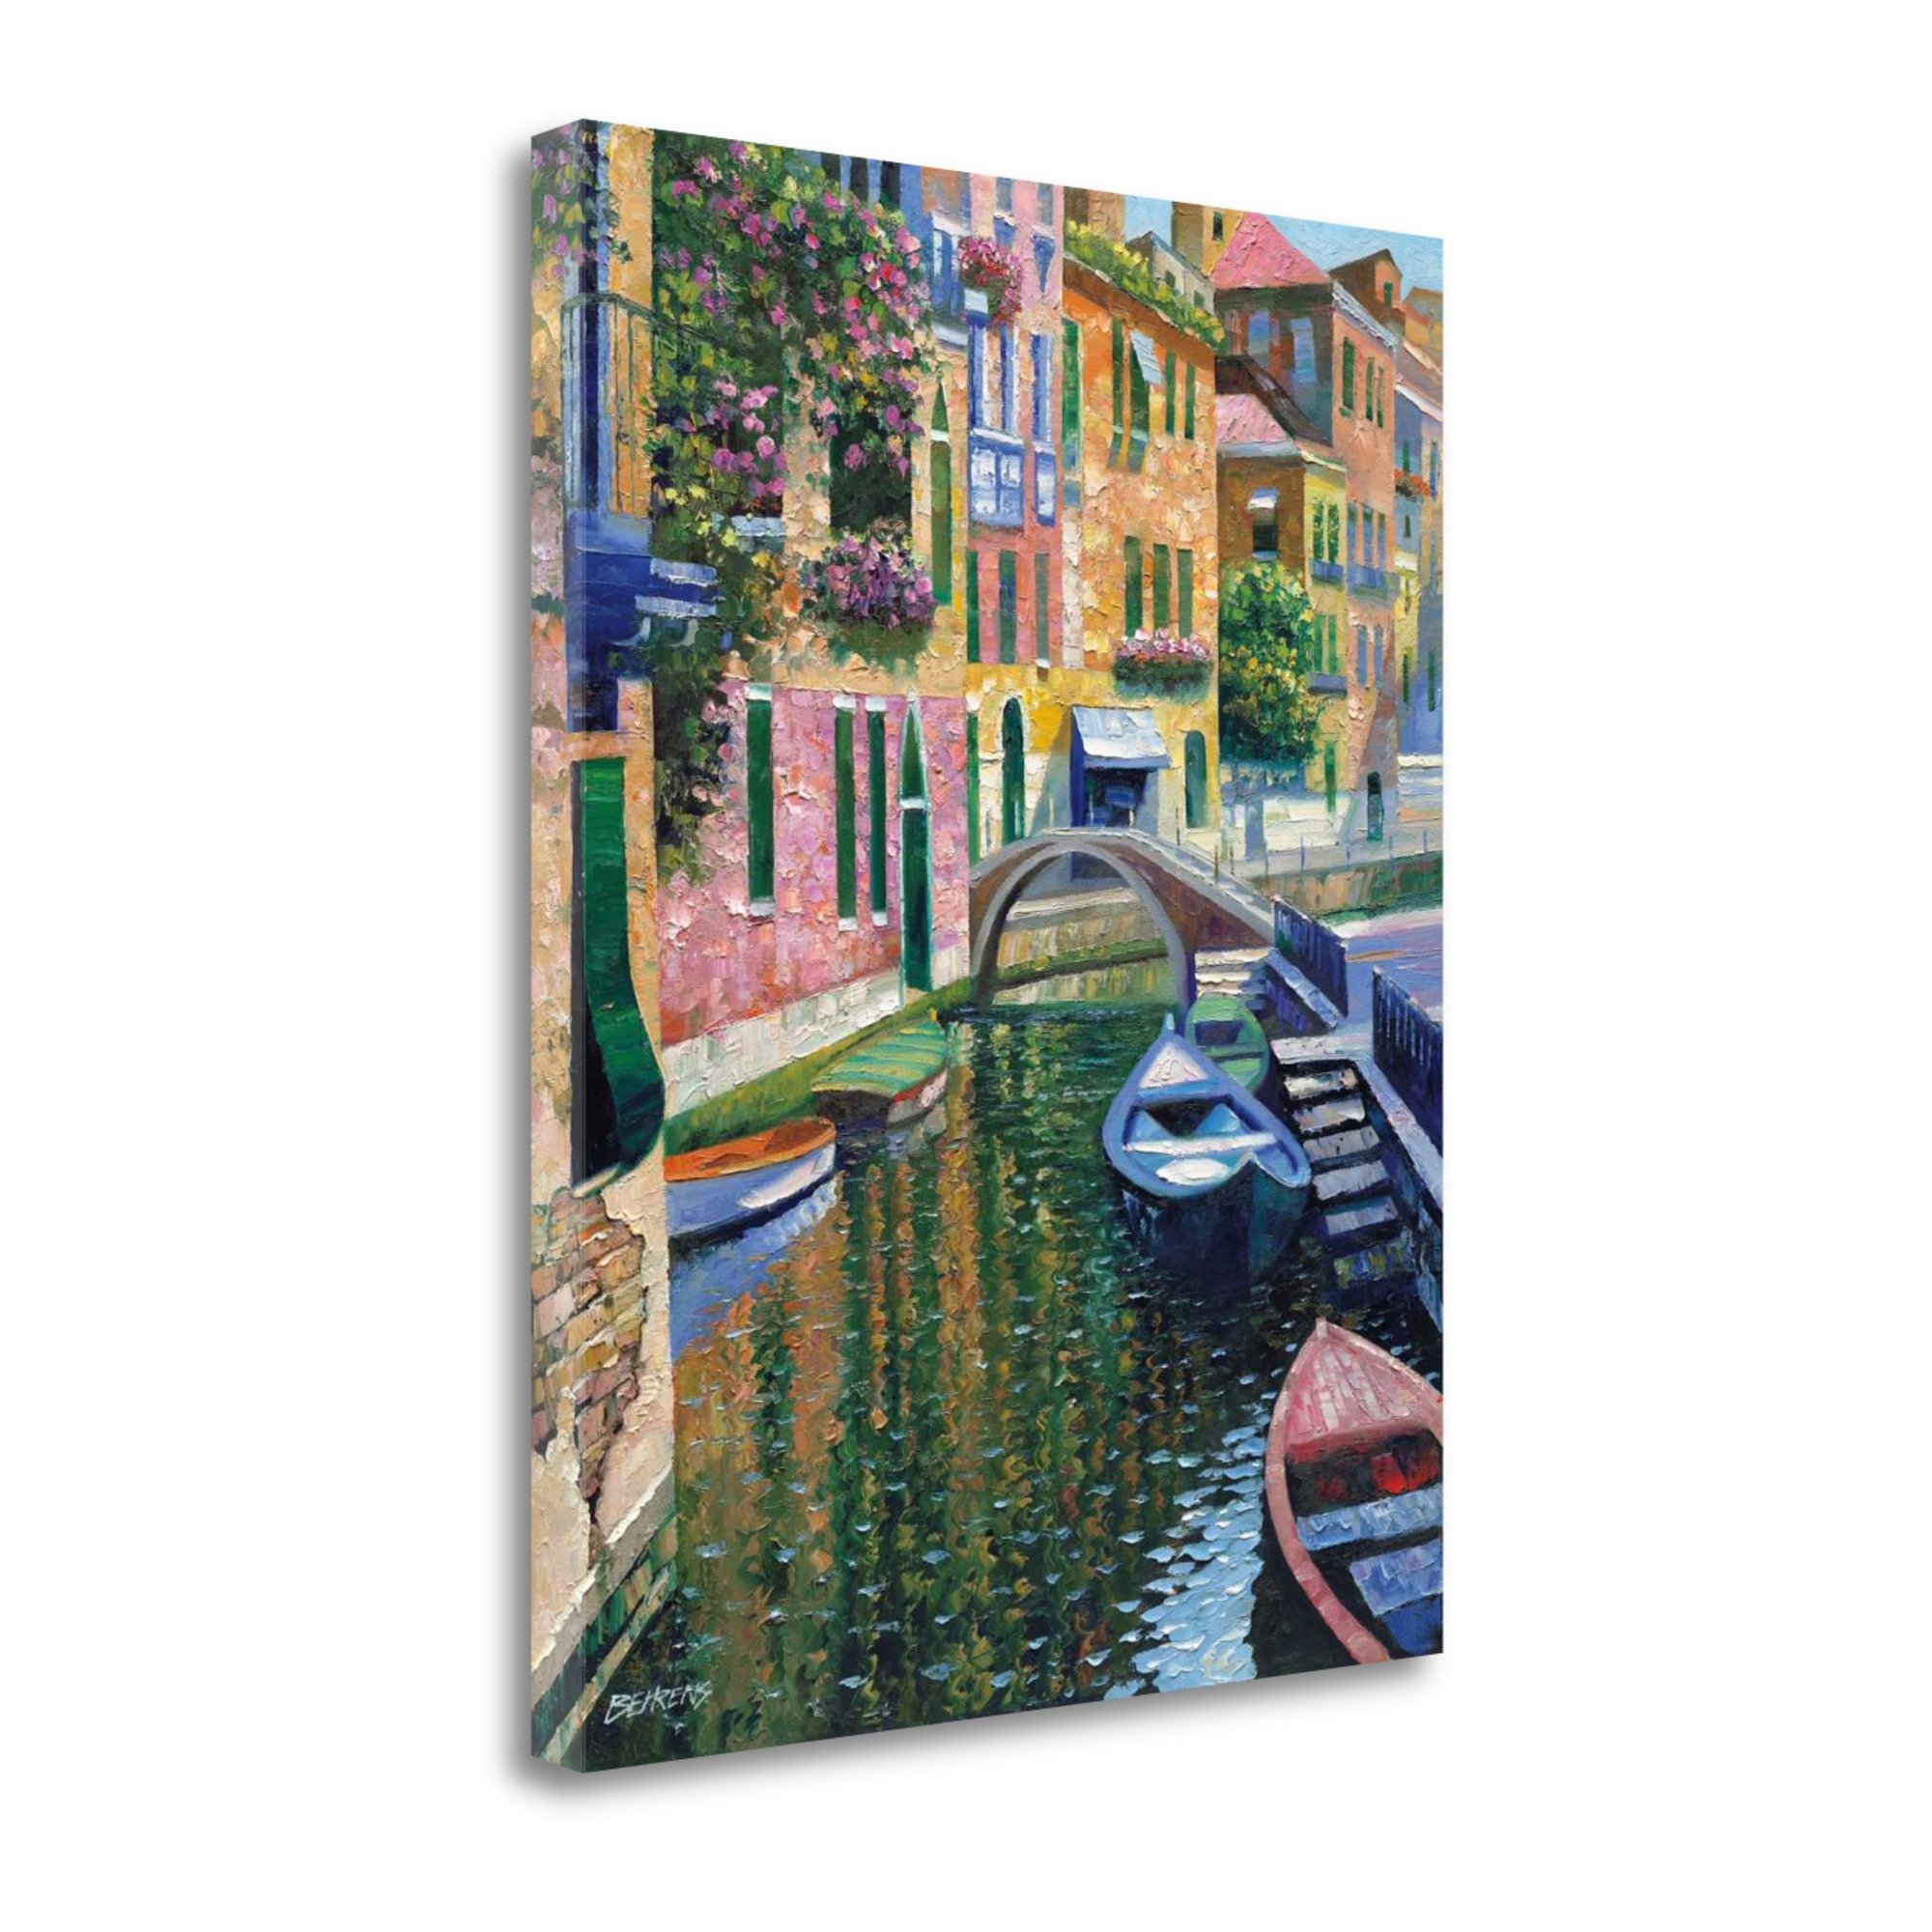 ''Romantic Canal'' By Howard Behrens, Fine Art Giclee Print on Gallery Wrap Canvas, Ready to Hang